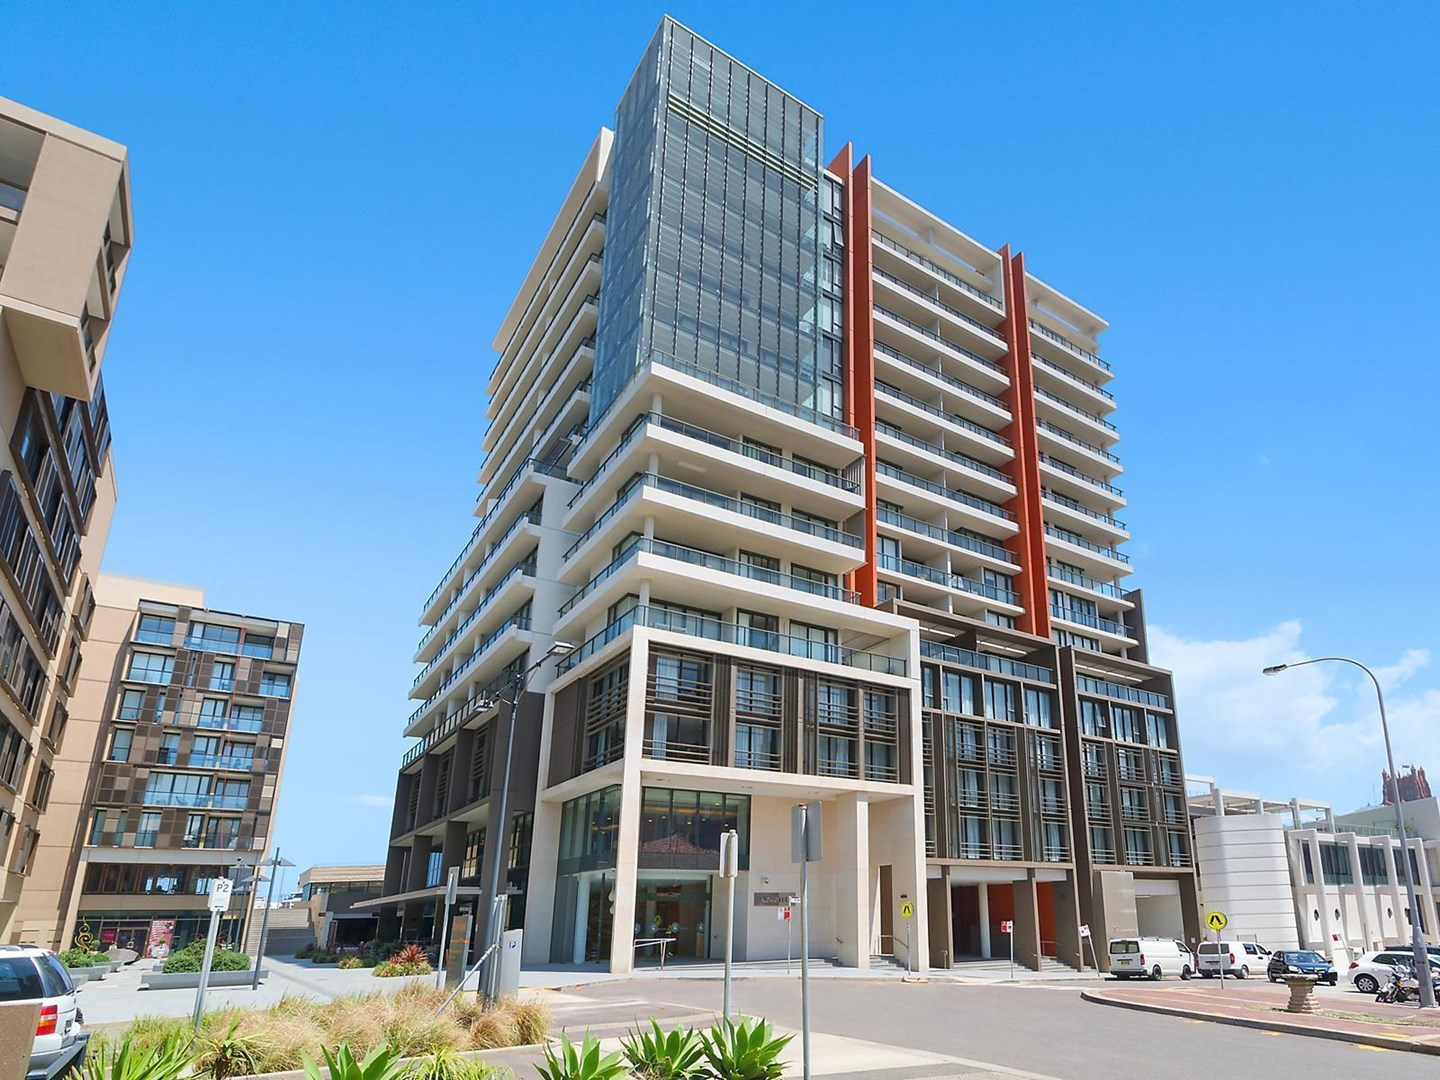 3 bedroom apartments newcastle nsw for sale bedroom for Apartment design nsw